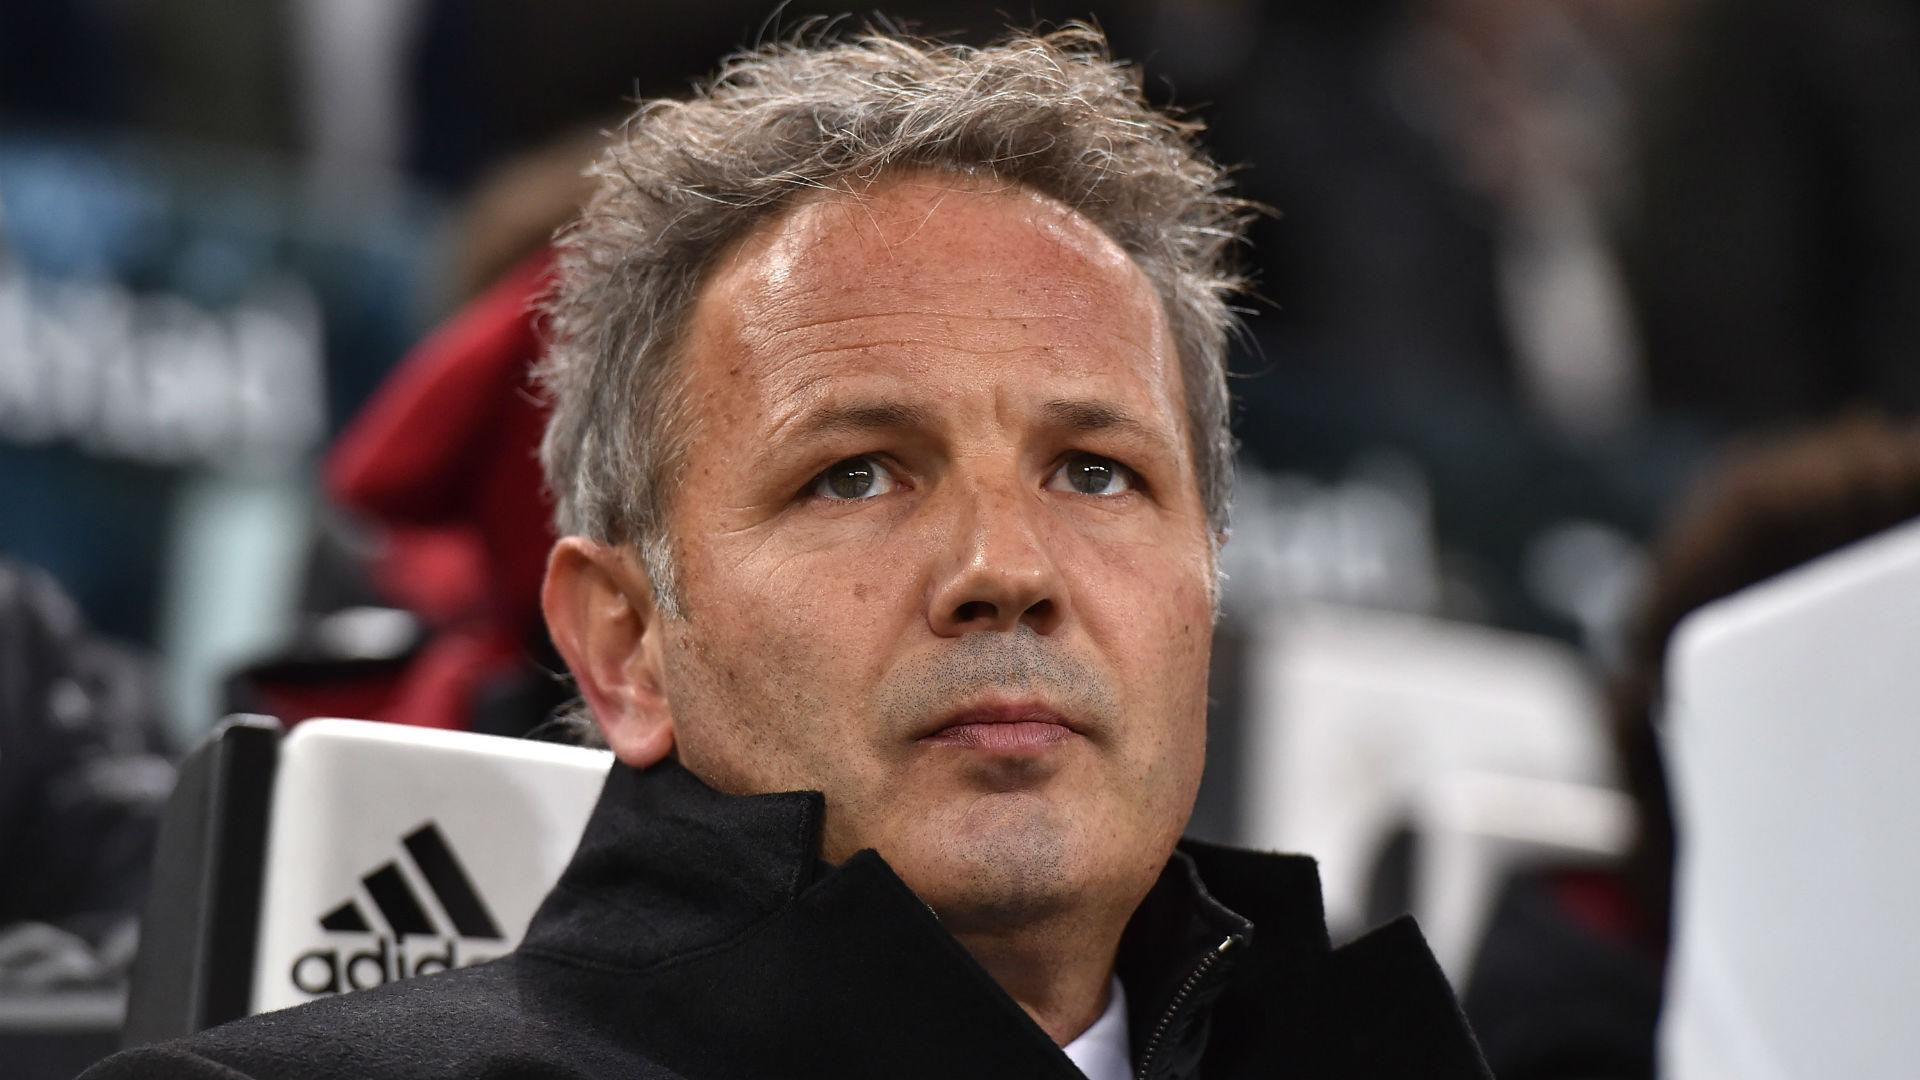 Mihajlovic abandoned me but Montella is the best, says Ferrero